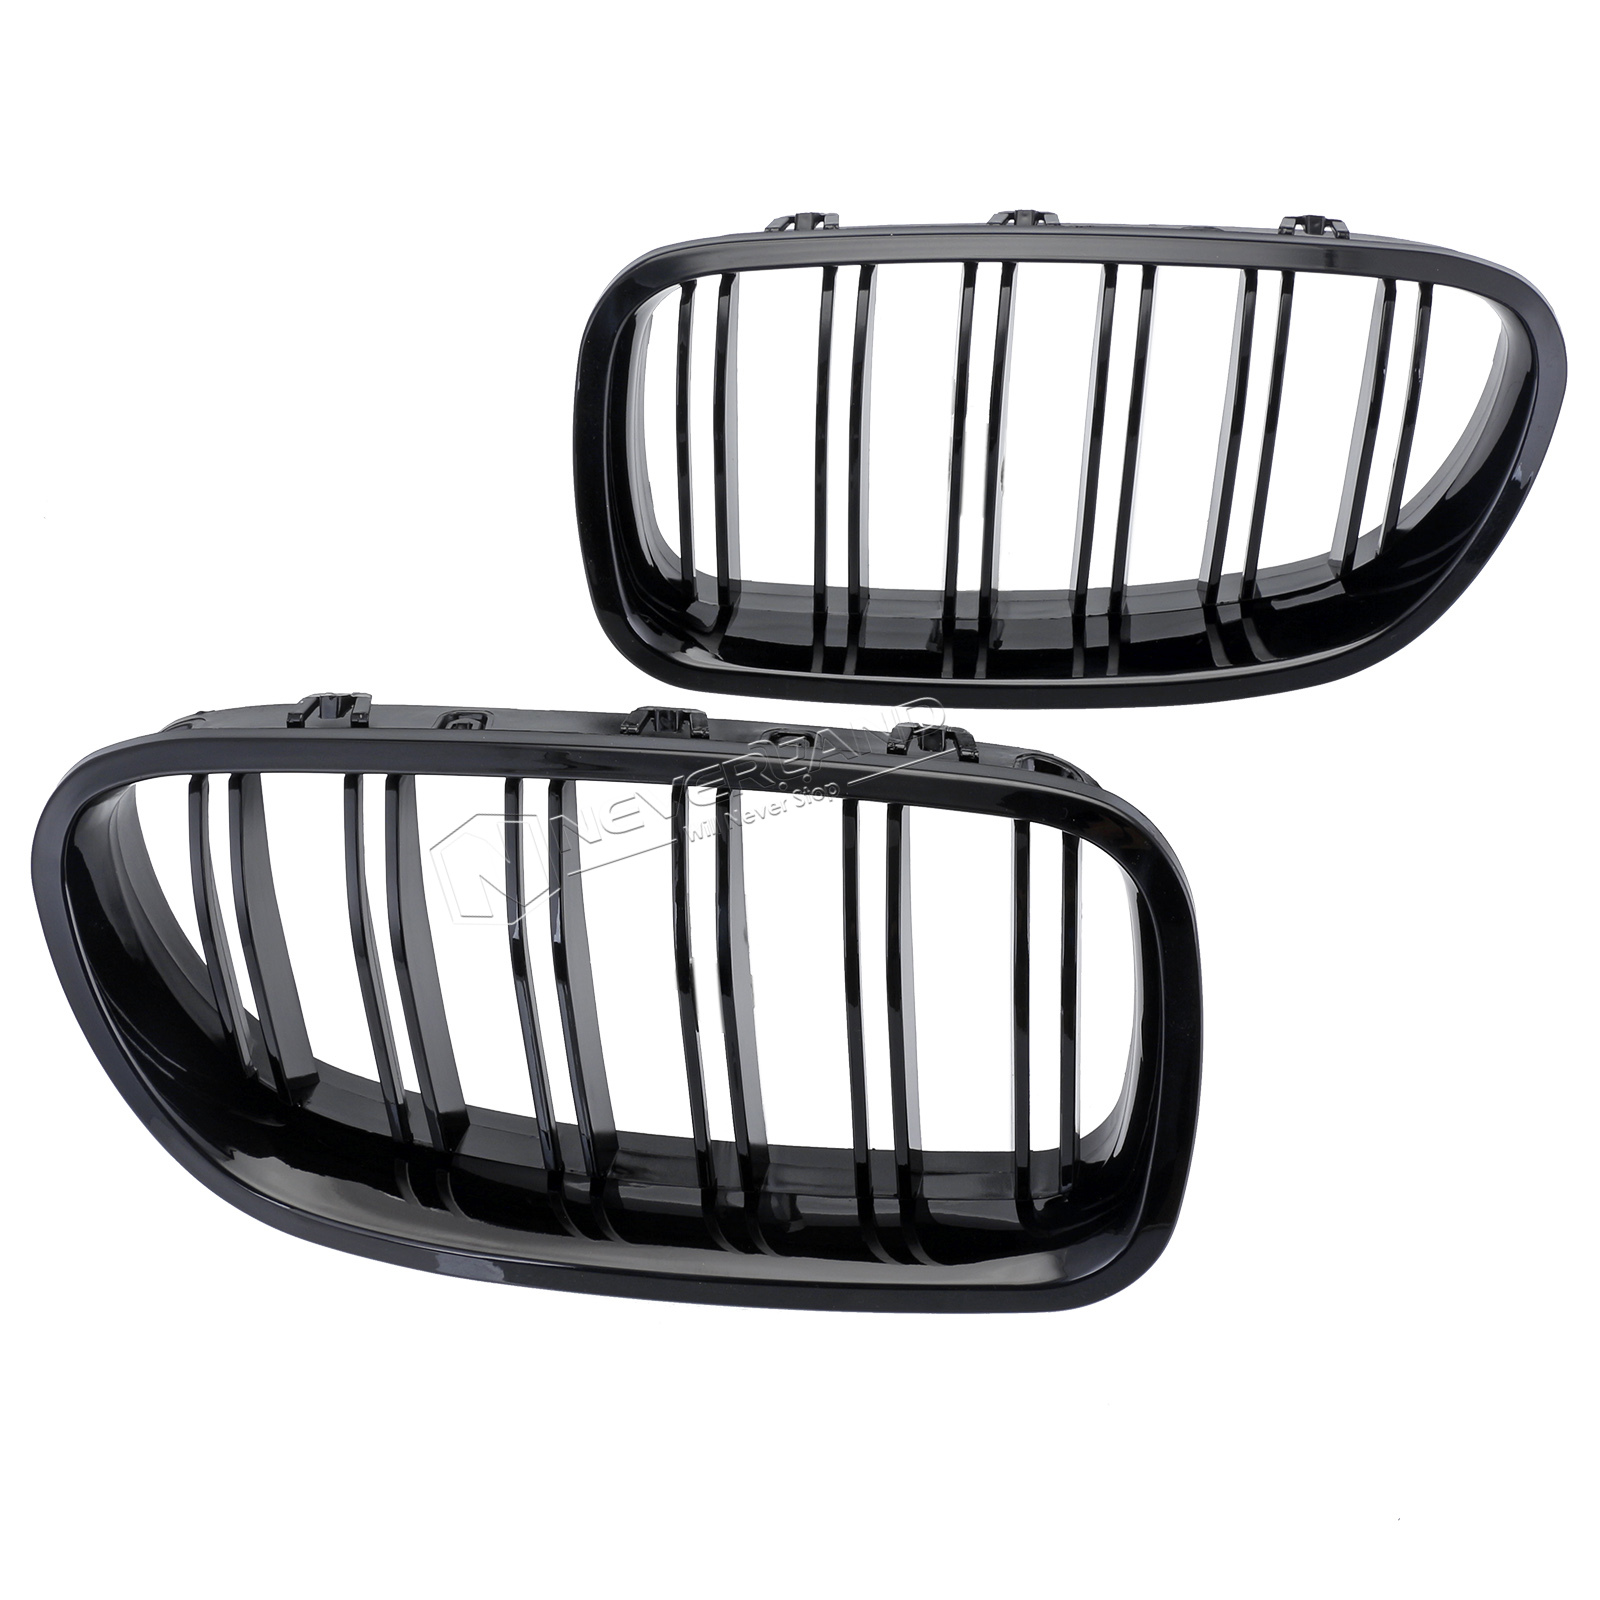 Gloss Black Front Sport Kidney Grill Grille For BMW 10-14